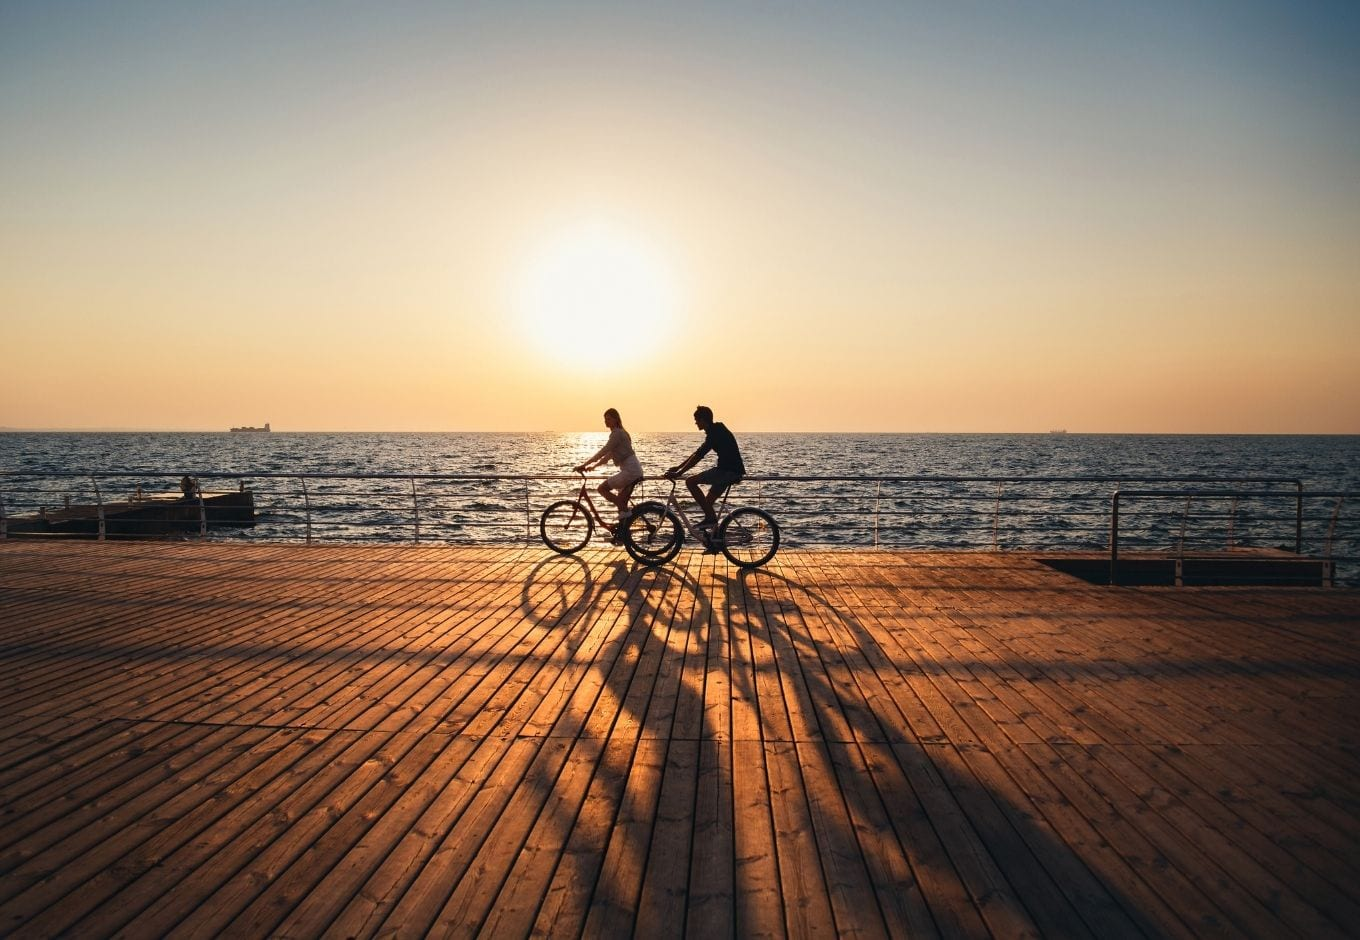 A woman and a man cycling over a wooden deck by the ocean at sunset.